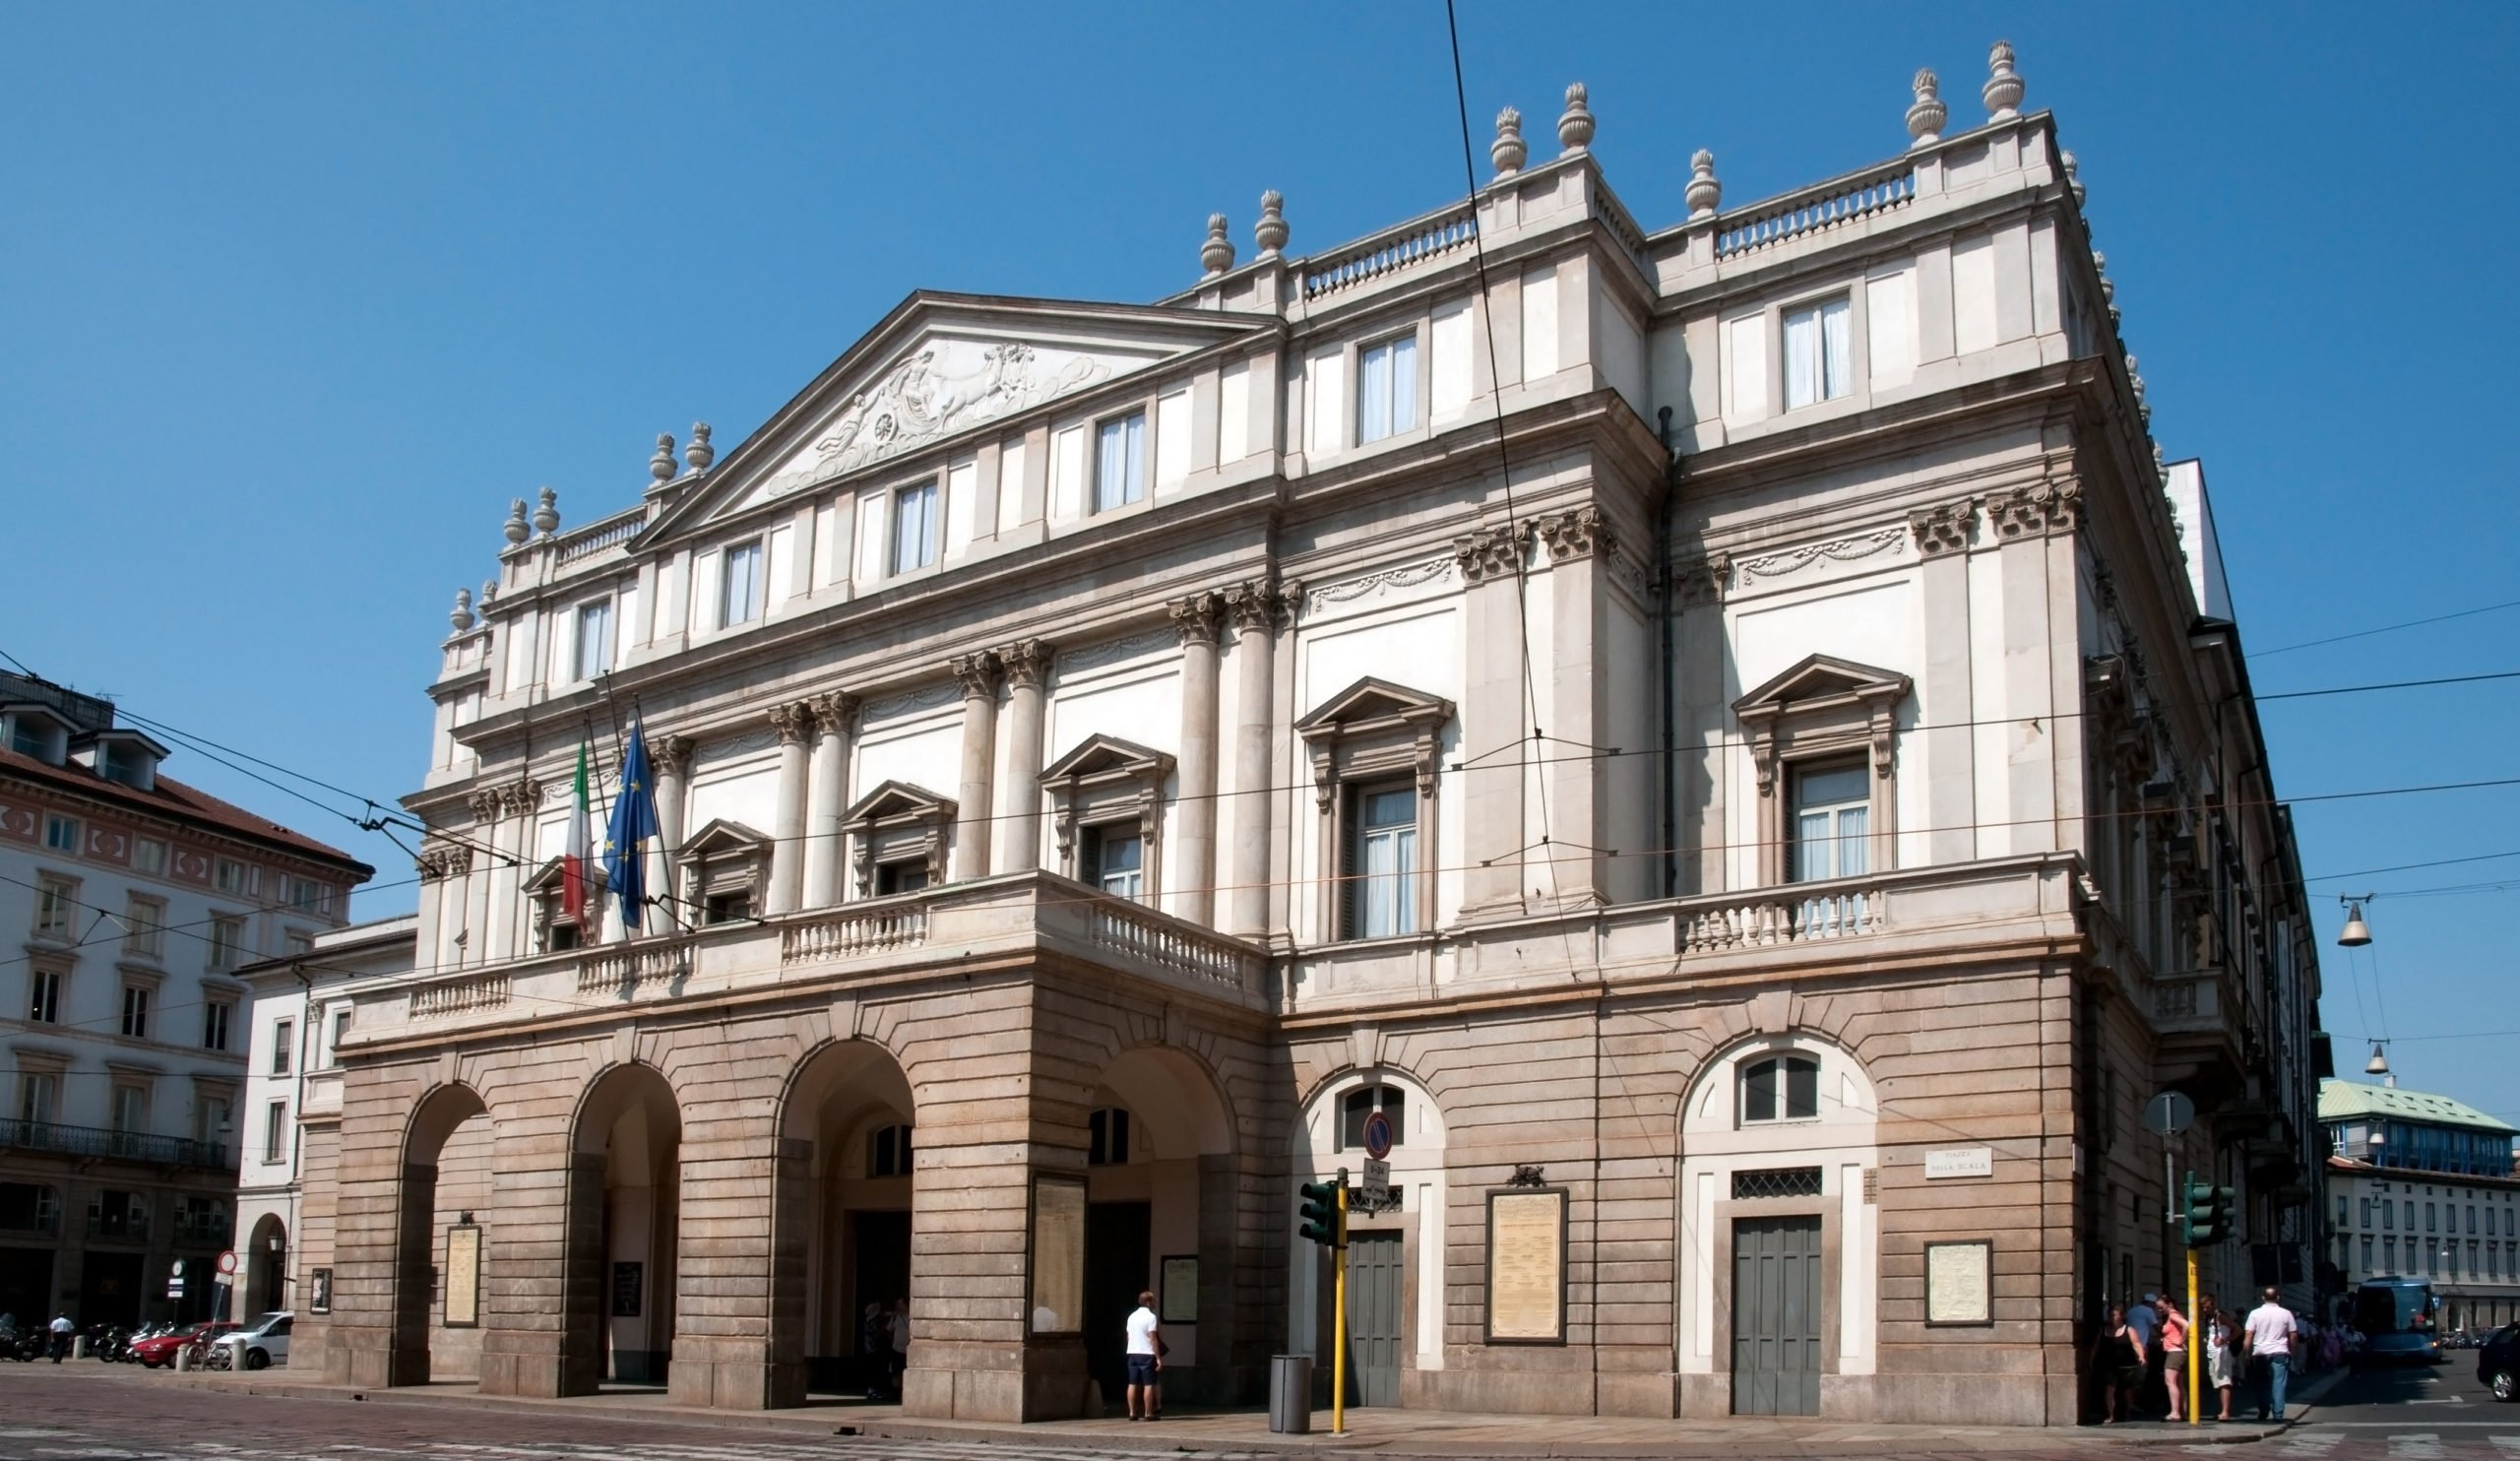 Pass By The Scala Theatre On The Insider Milan City Tour